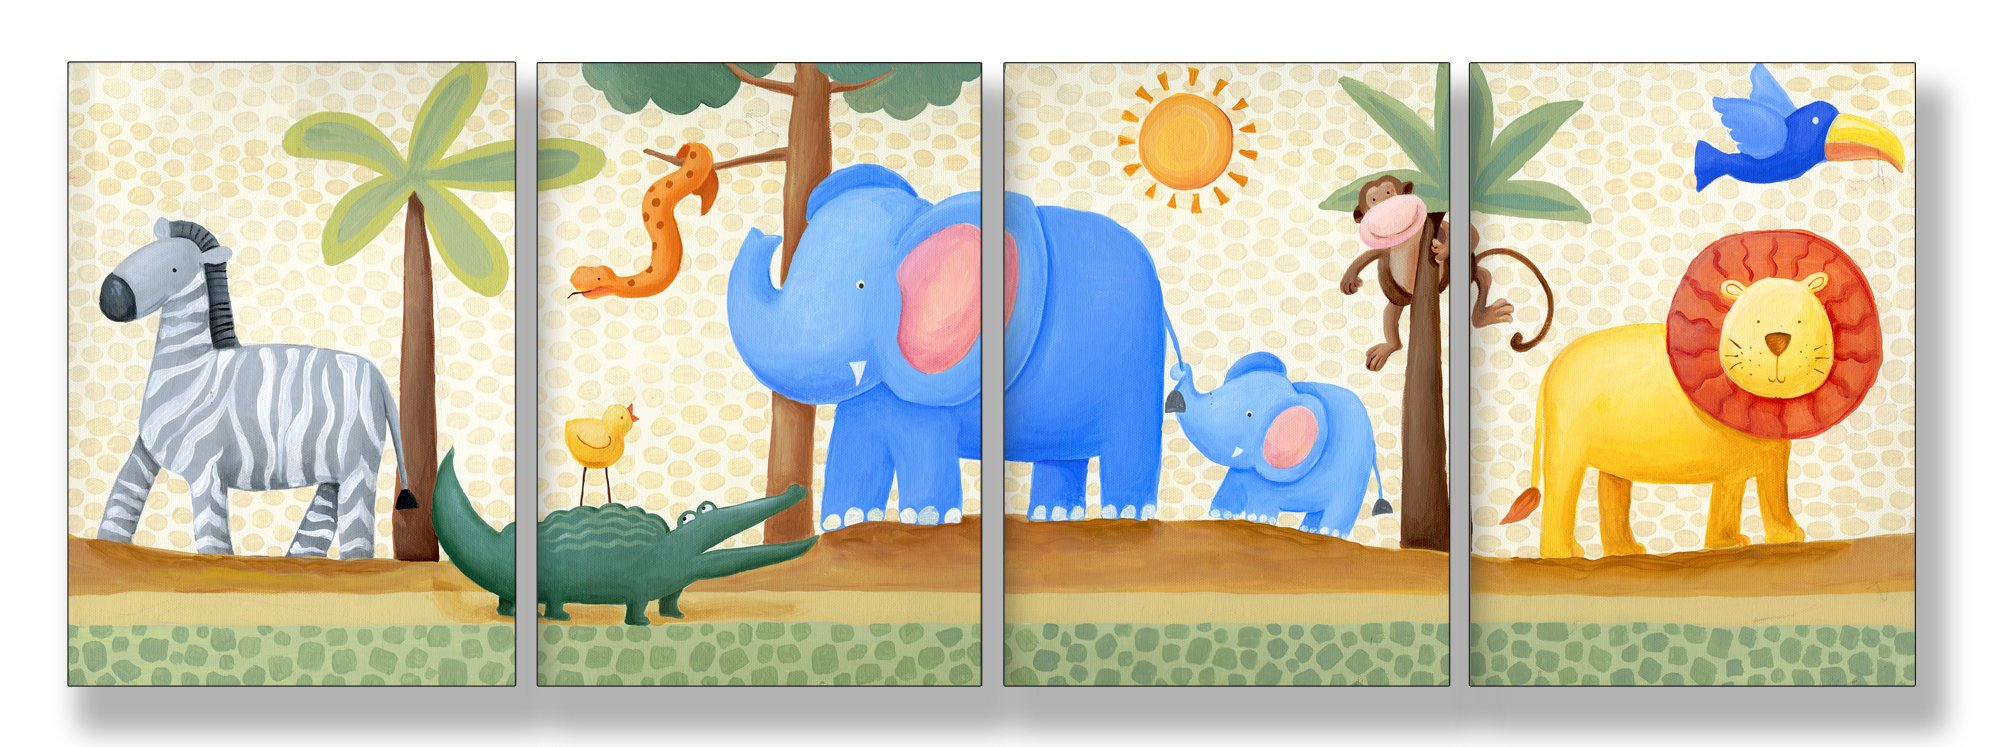 The Kids Room by Stupell Zebra, Crocodile, Elephant, Lion In The Jungle 4-Pc. Rectangle Wall Plaque Set, 11 x 0.5 x 17, Proudly Made in USA